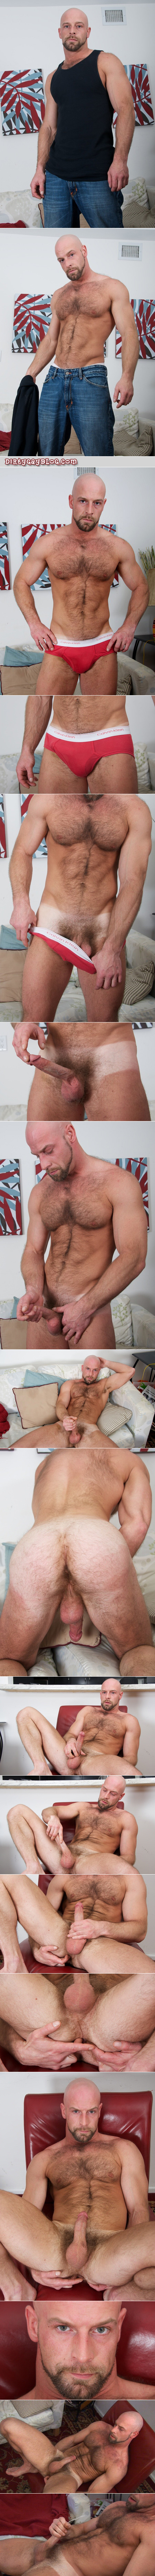 Bald, muscular Daddy with a hairy chest and back masturbates wearing red underwear.